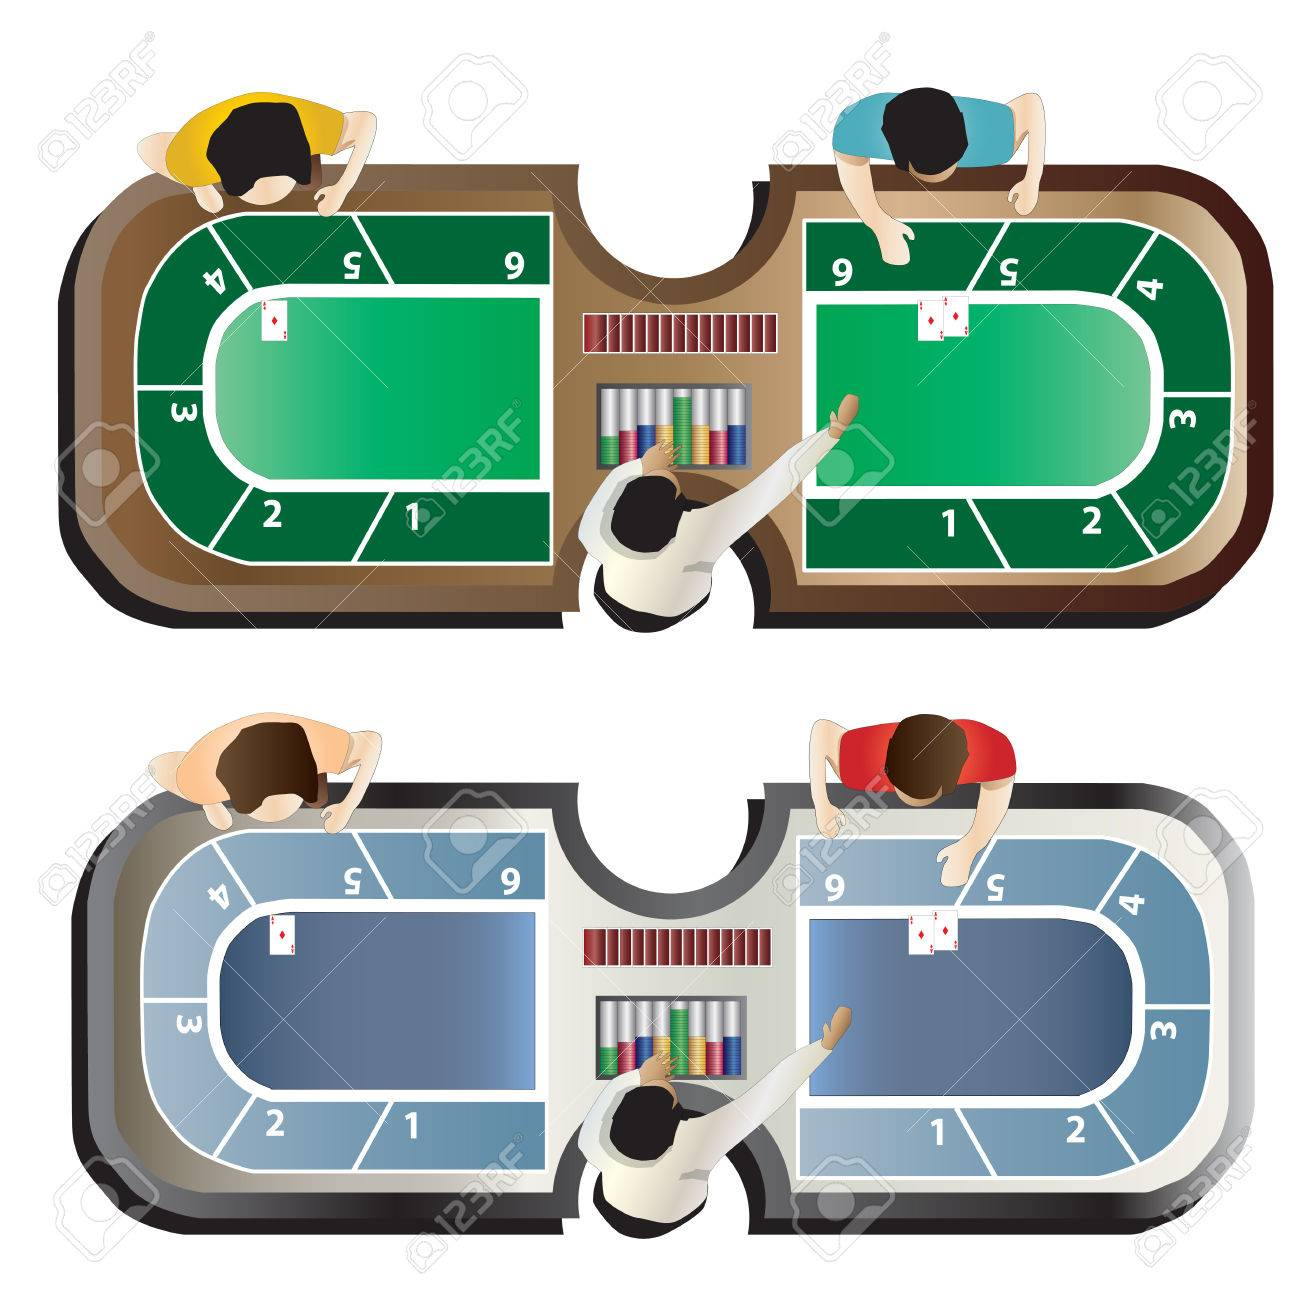 Casino furniture Baccarat table top view set 4 for interior vector illustration Stock Vector  sc 1 st  123RF.com & Casino Furniture Baccarat Table Top View Set 4 For Interior ...